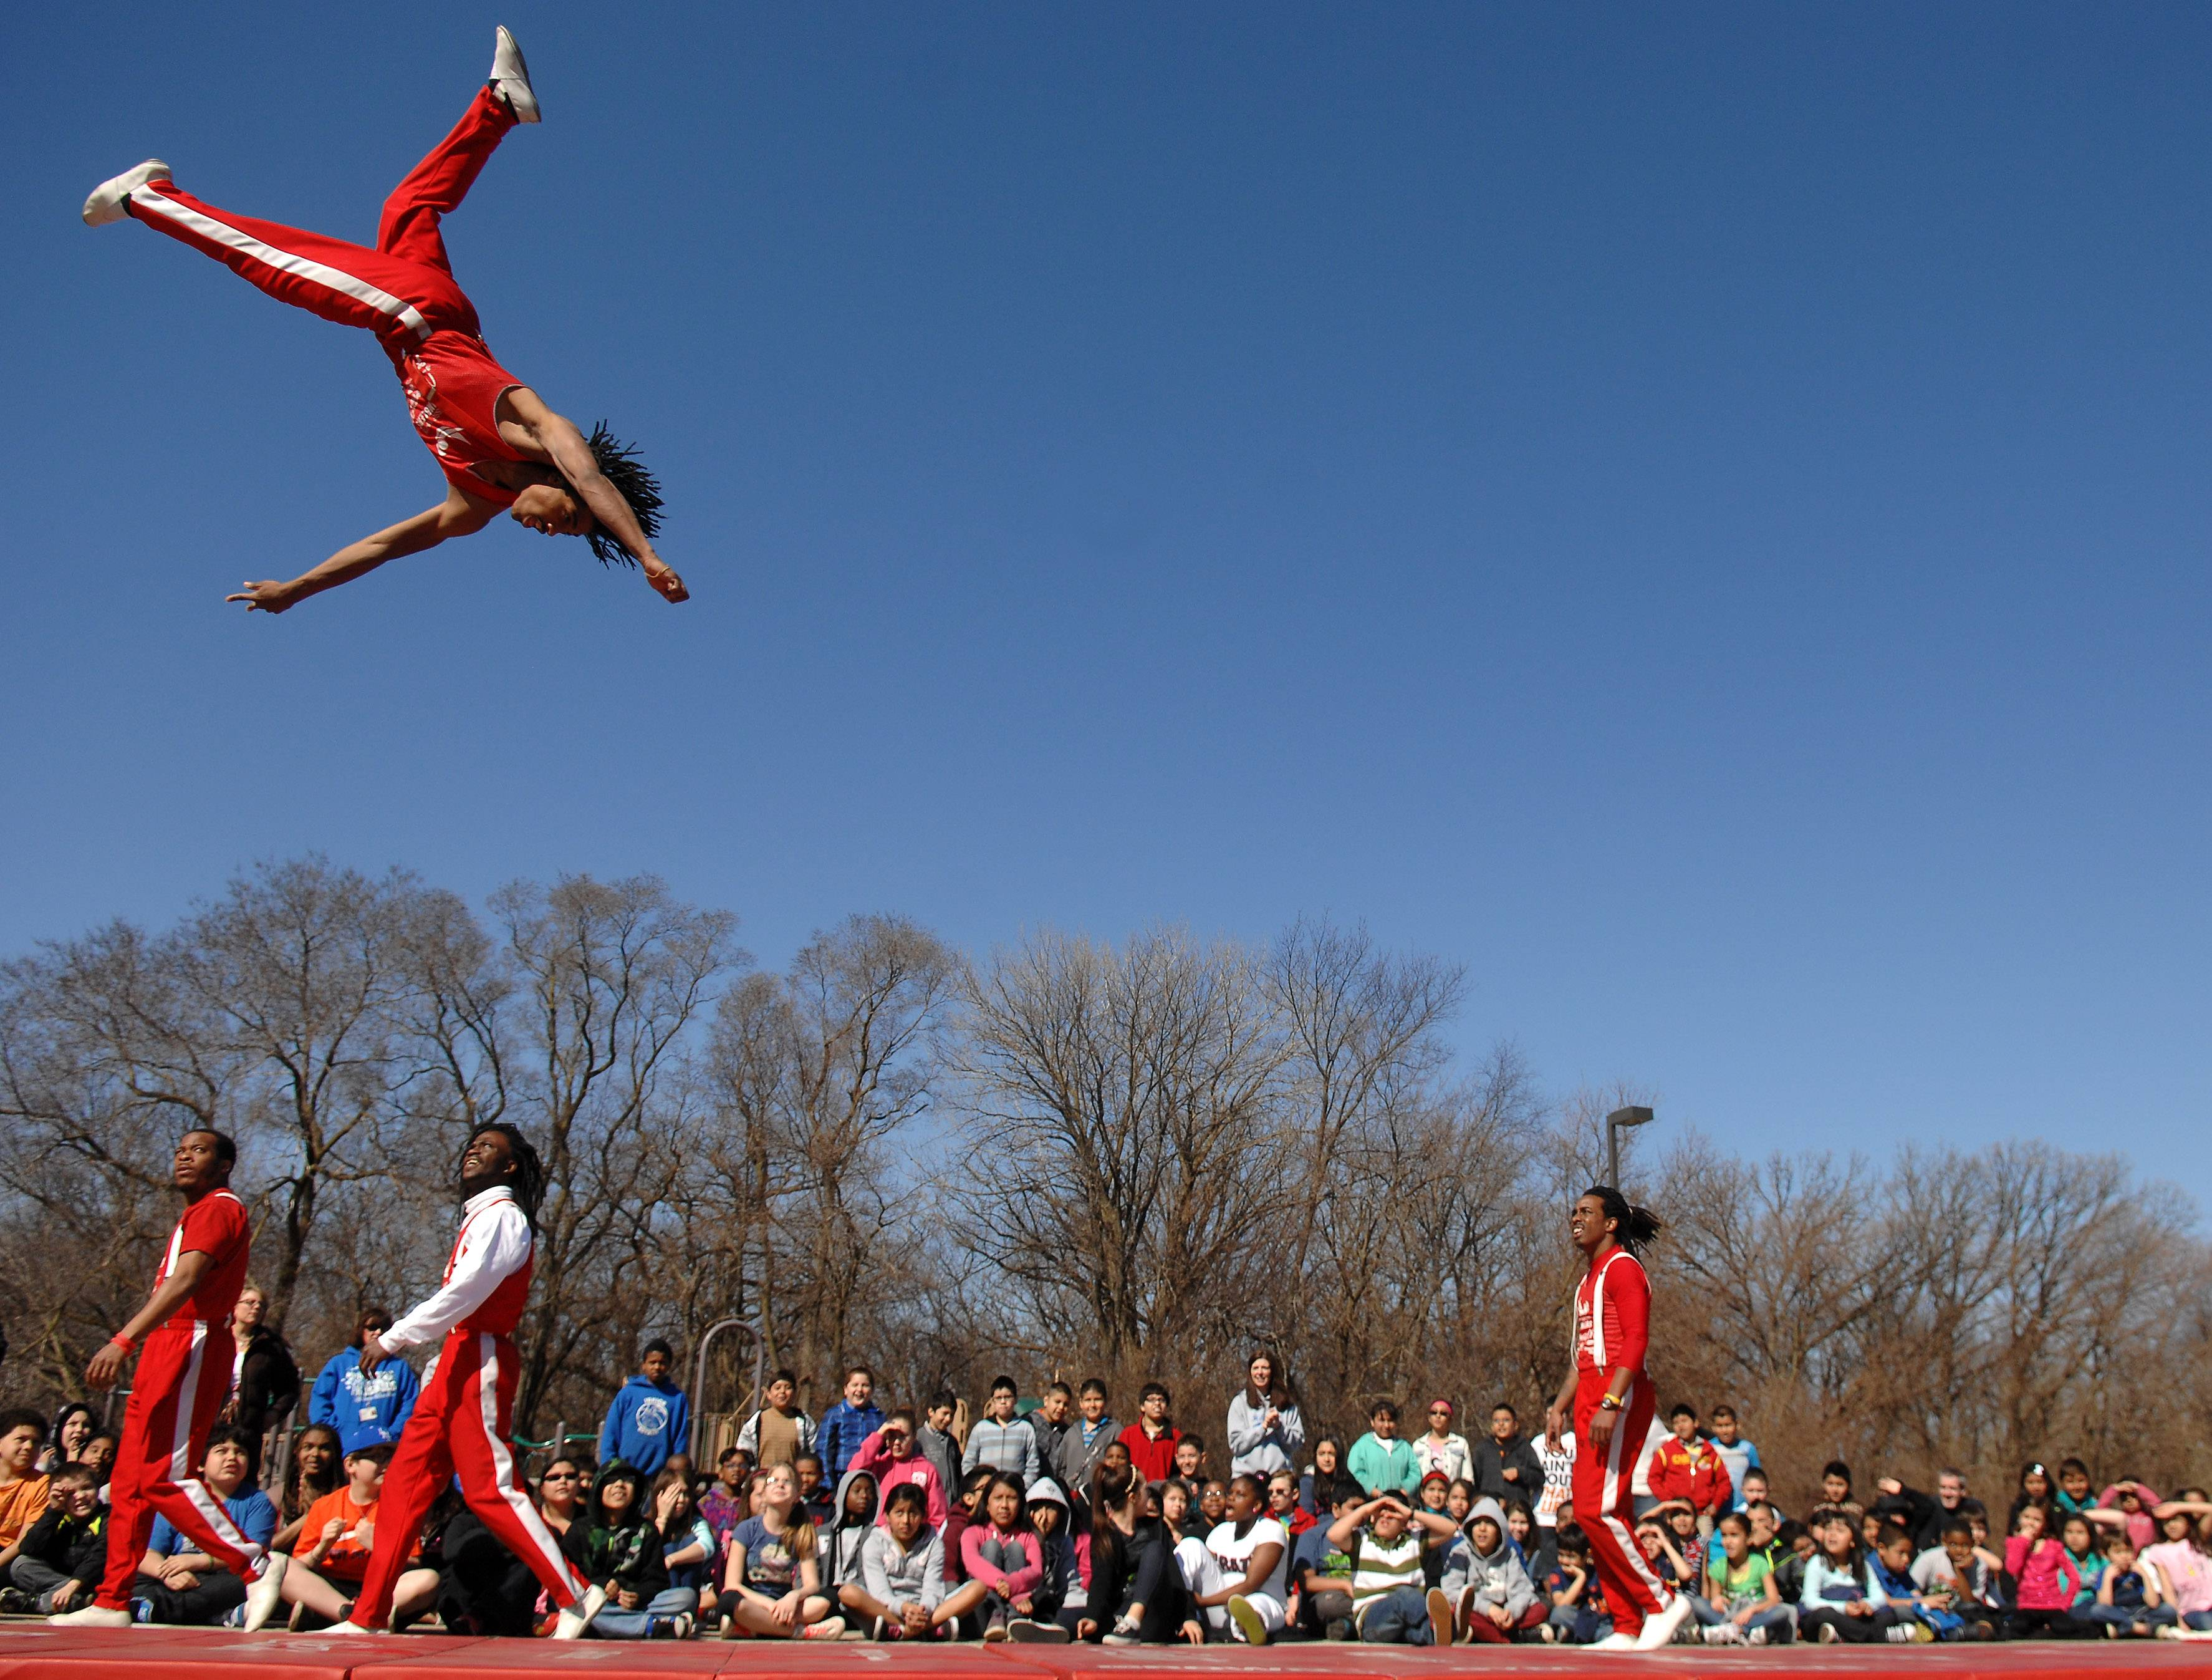 Students look on as the Jesse White Tumblers perform Friday at Hillcrest Elementary School in Elgin.